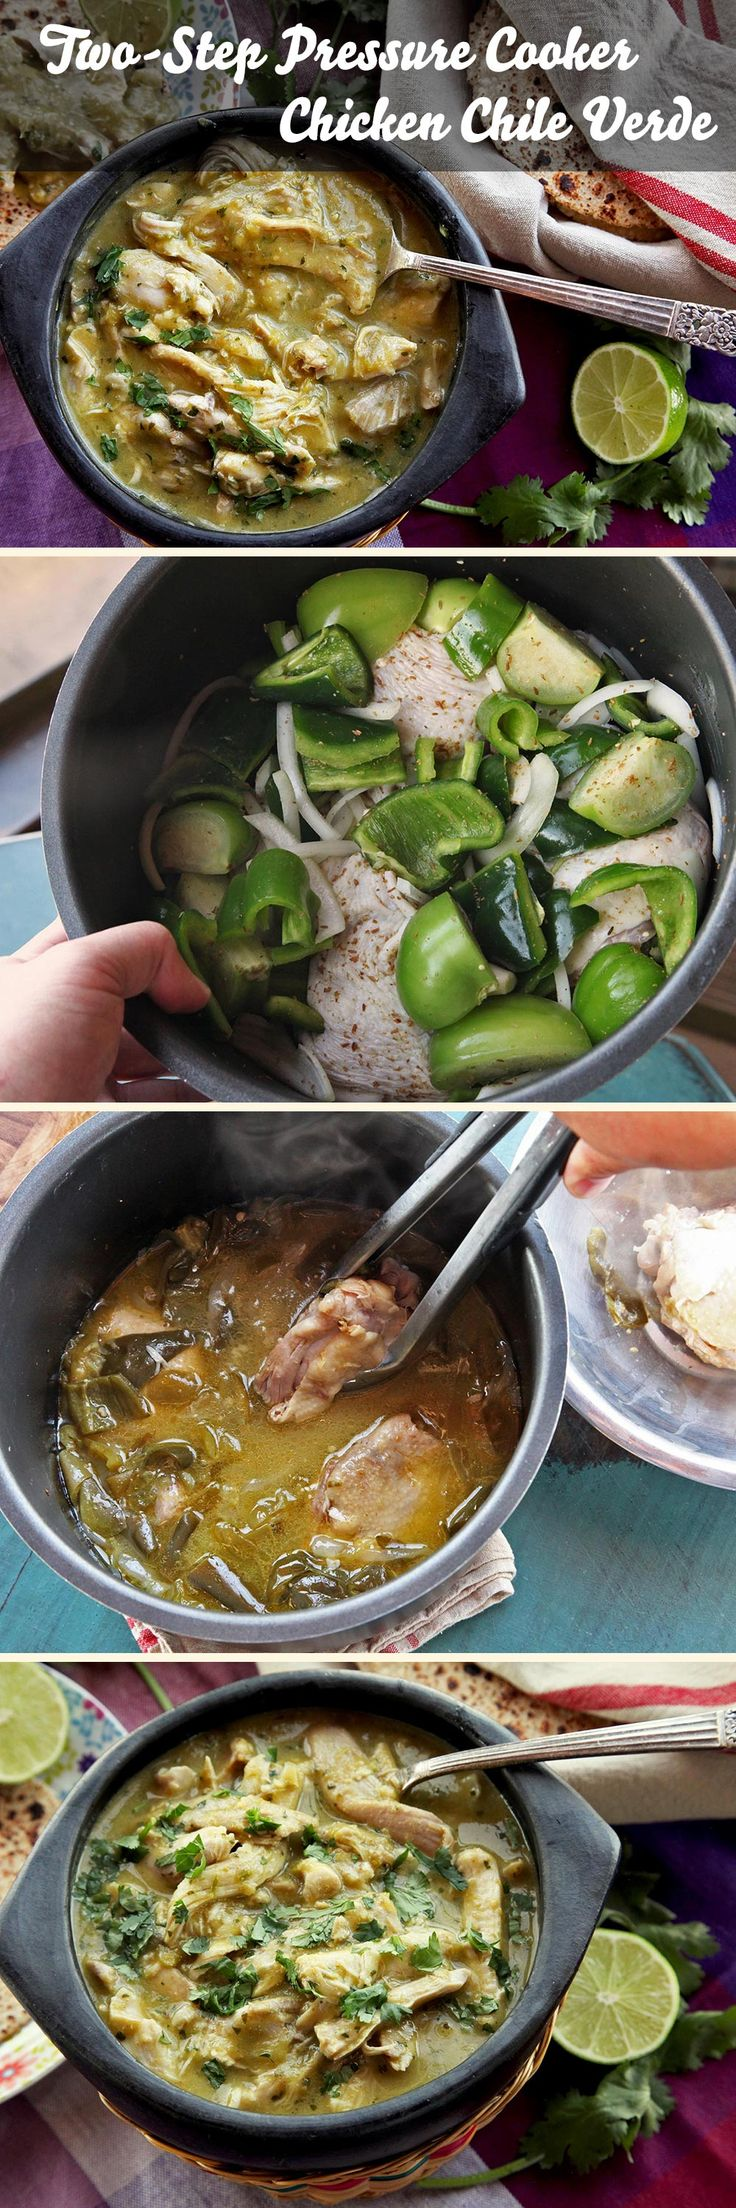 The Pressure Cooker Makes Rich Chicken Chile Verde In Under 30 Minutes